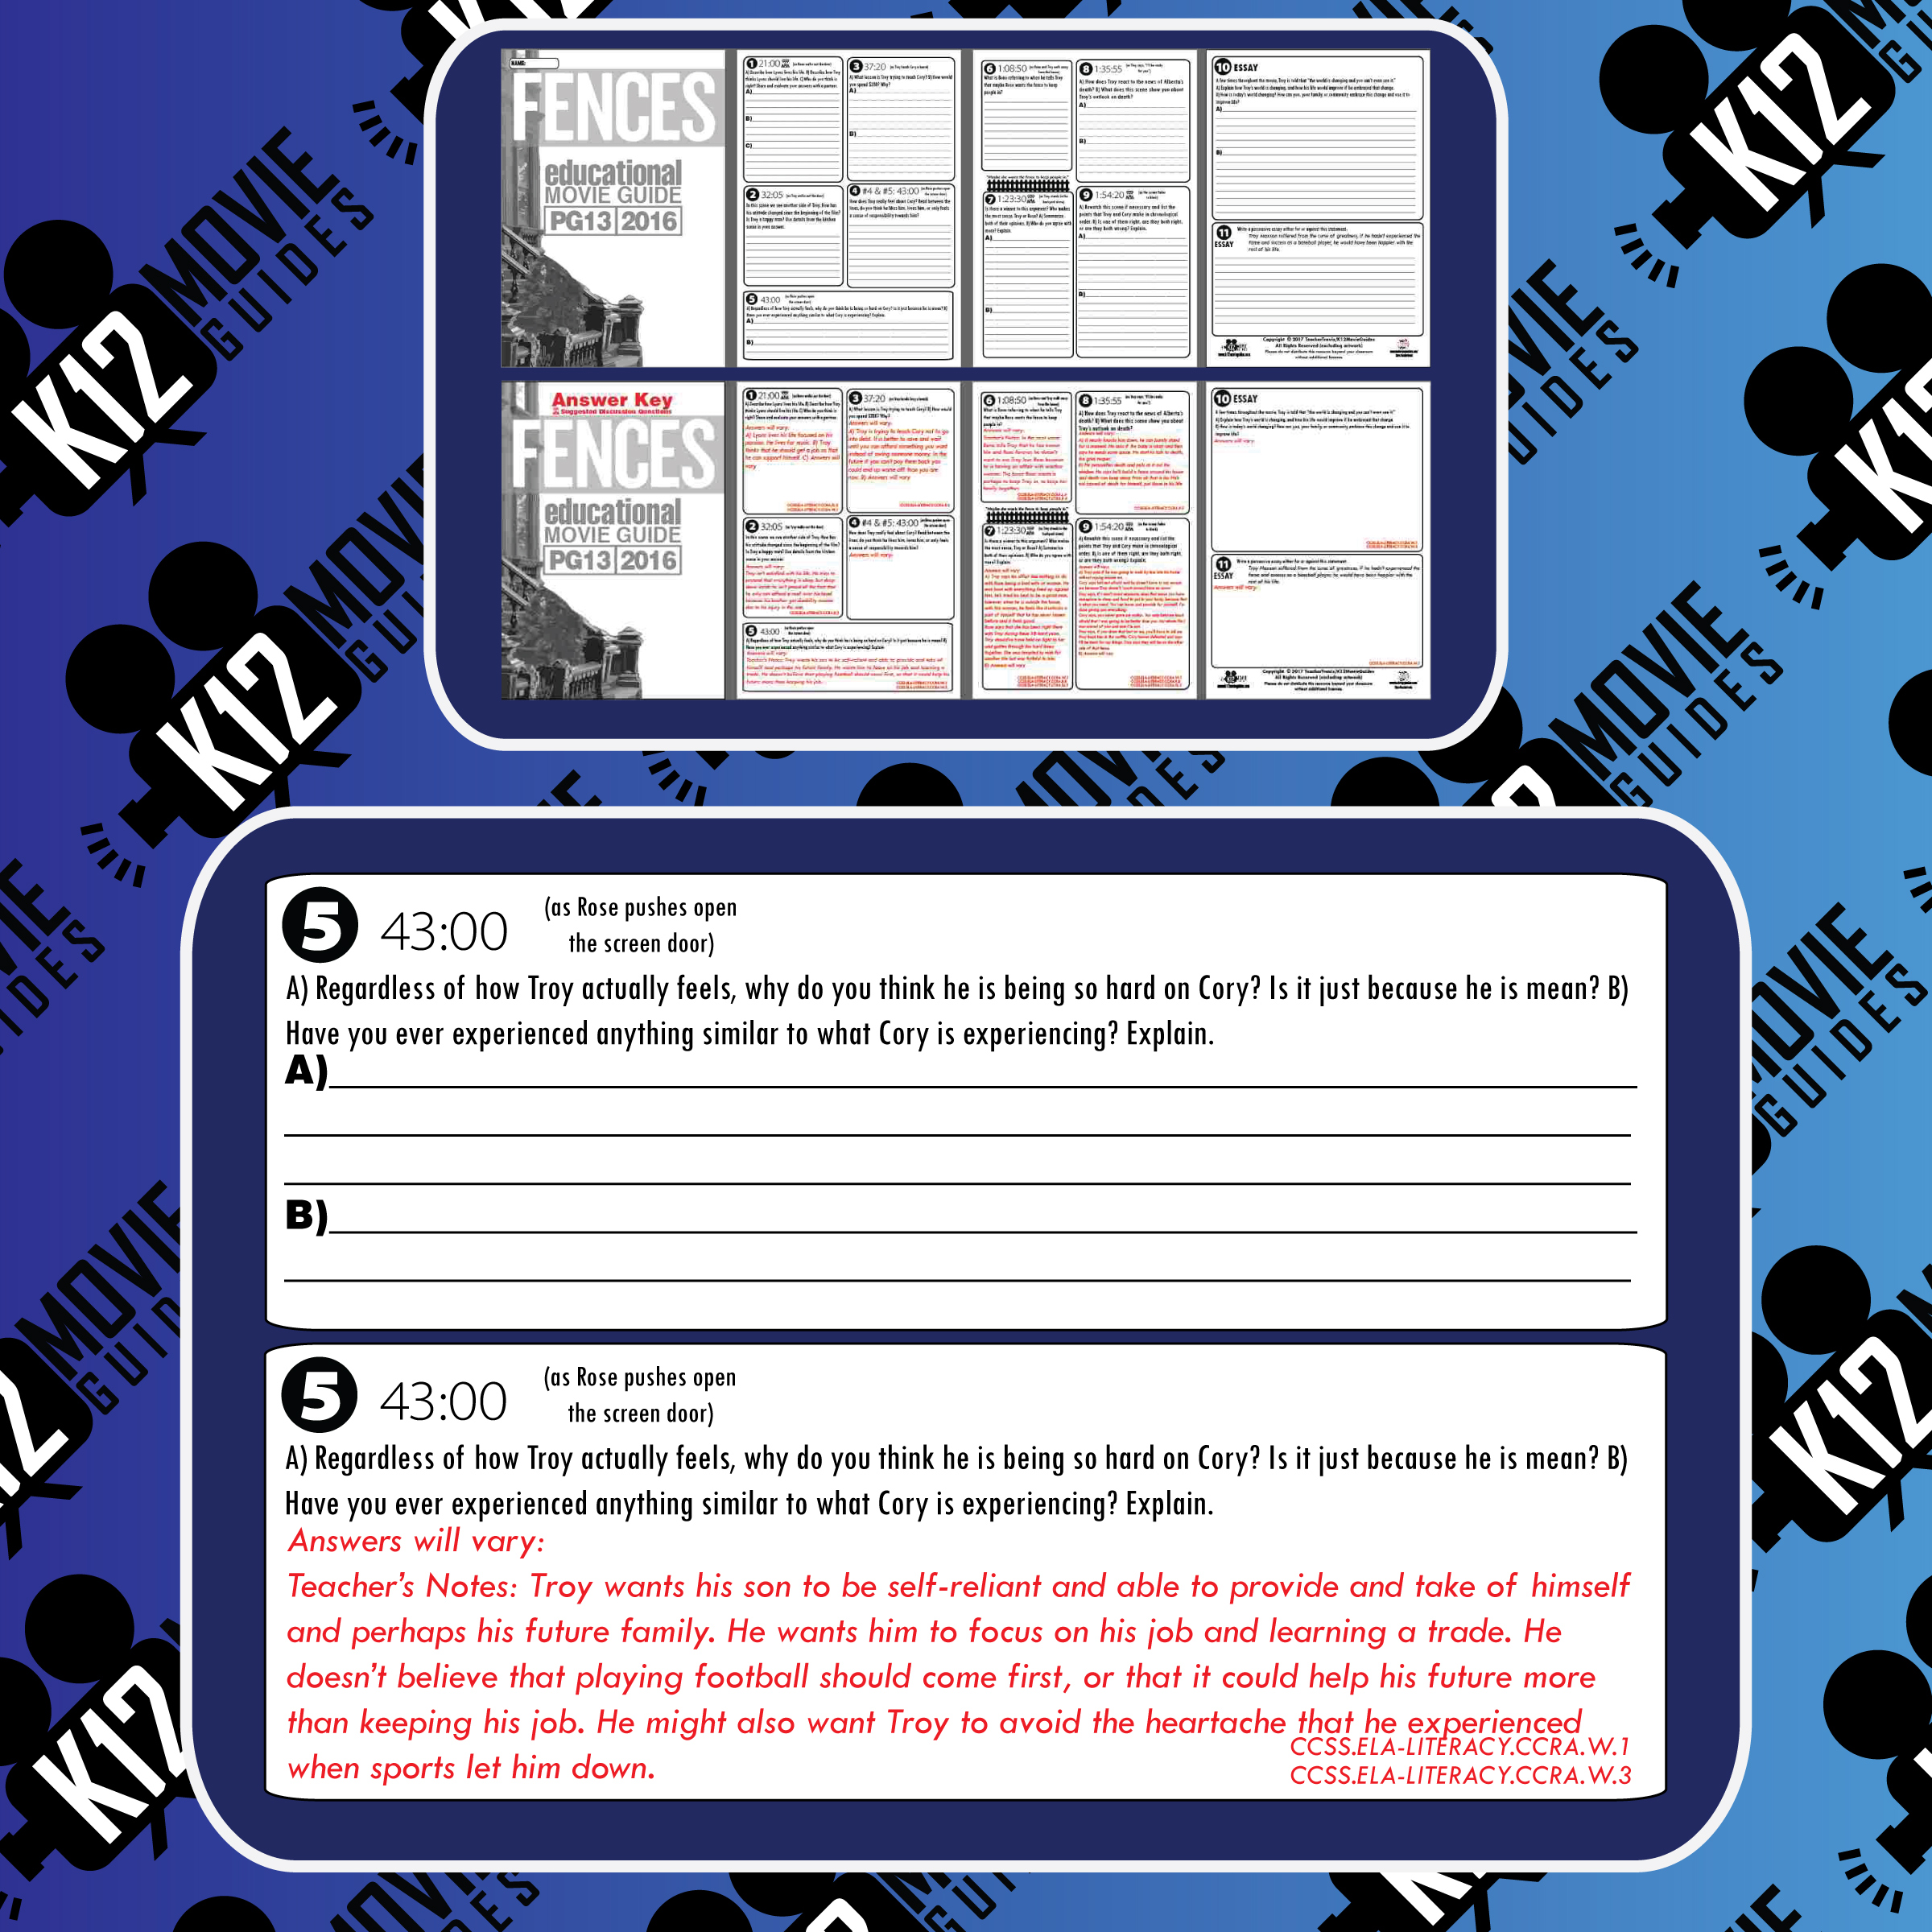 Fences Movie Viewing Guide | Questions | Worksheet | Google Forms (PG13 - 2016) Free Sample